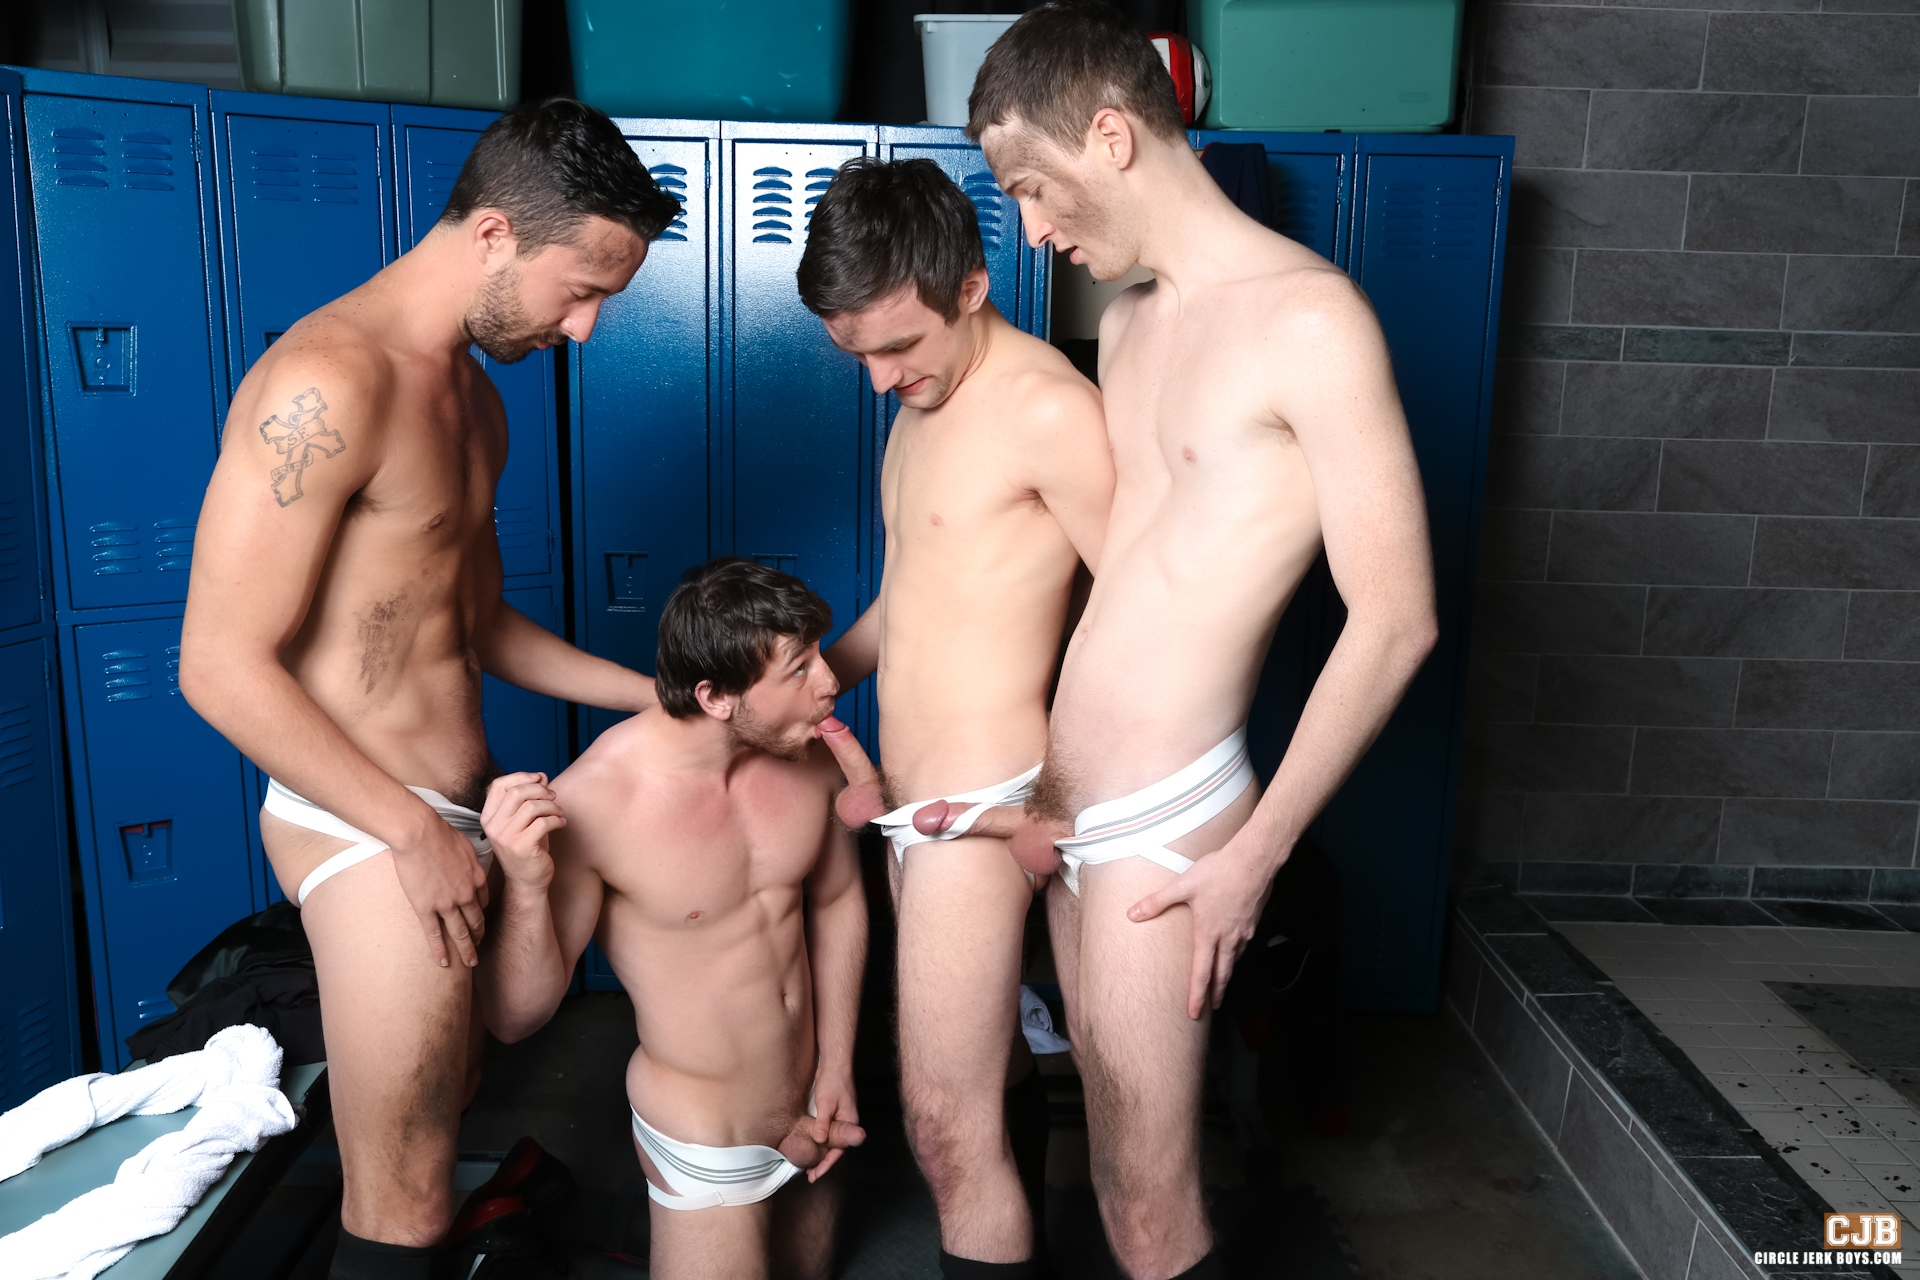 H boy locker room pissing and fucking